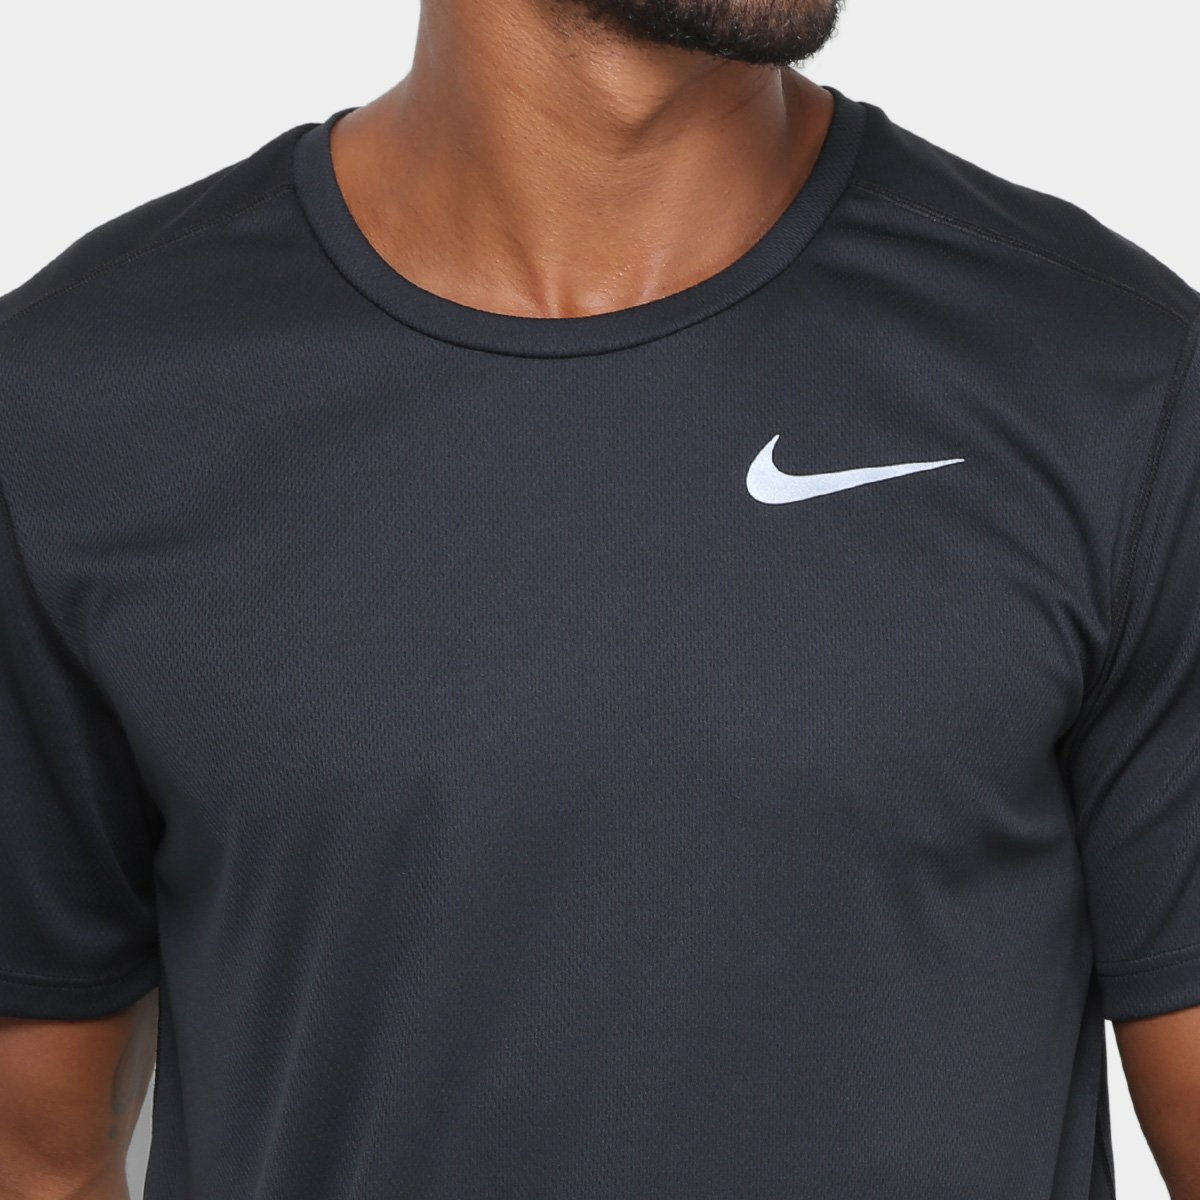 Camiseta Nike DRI FIT Run Masculina Preto